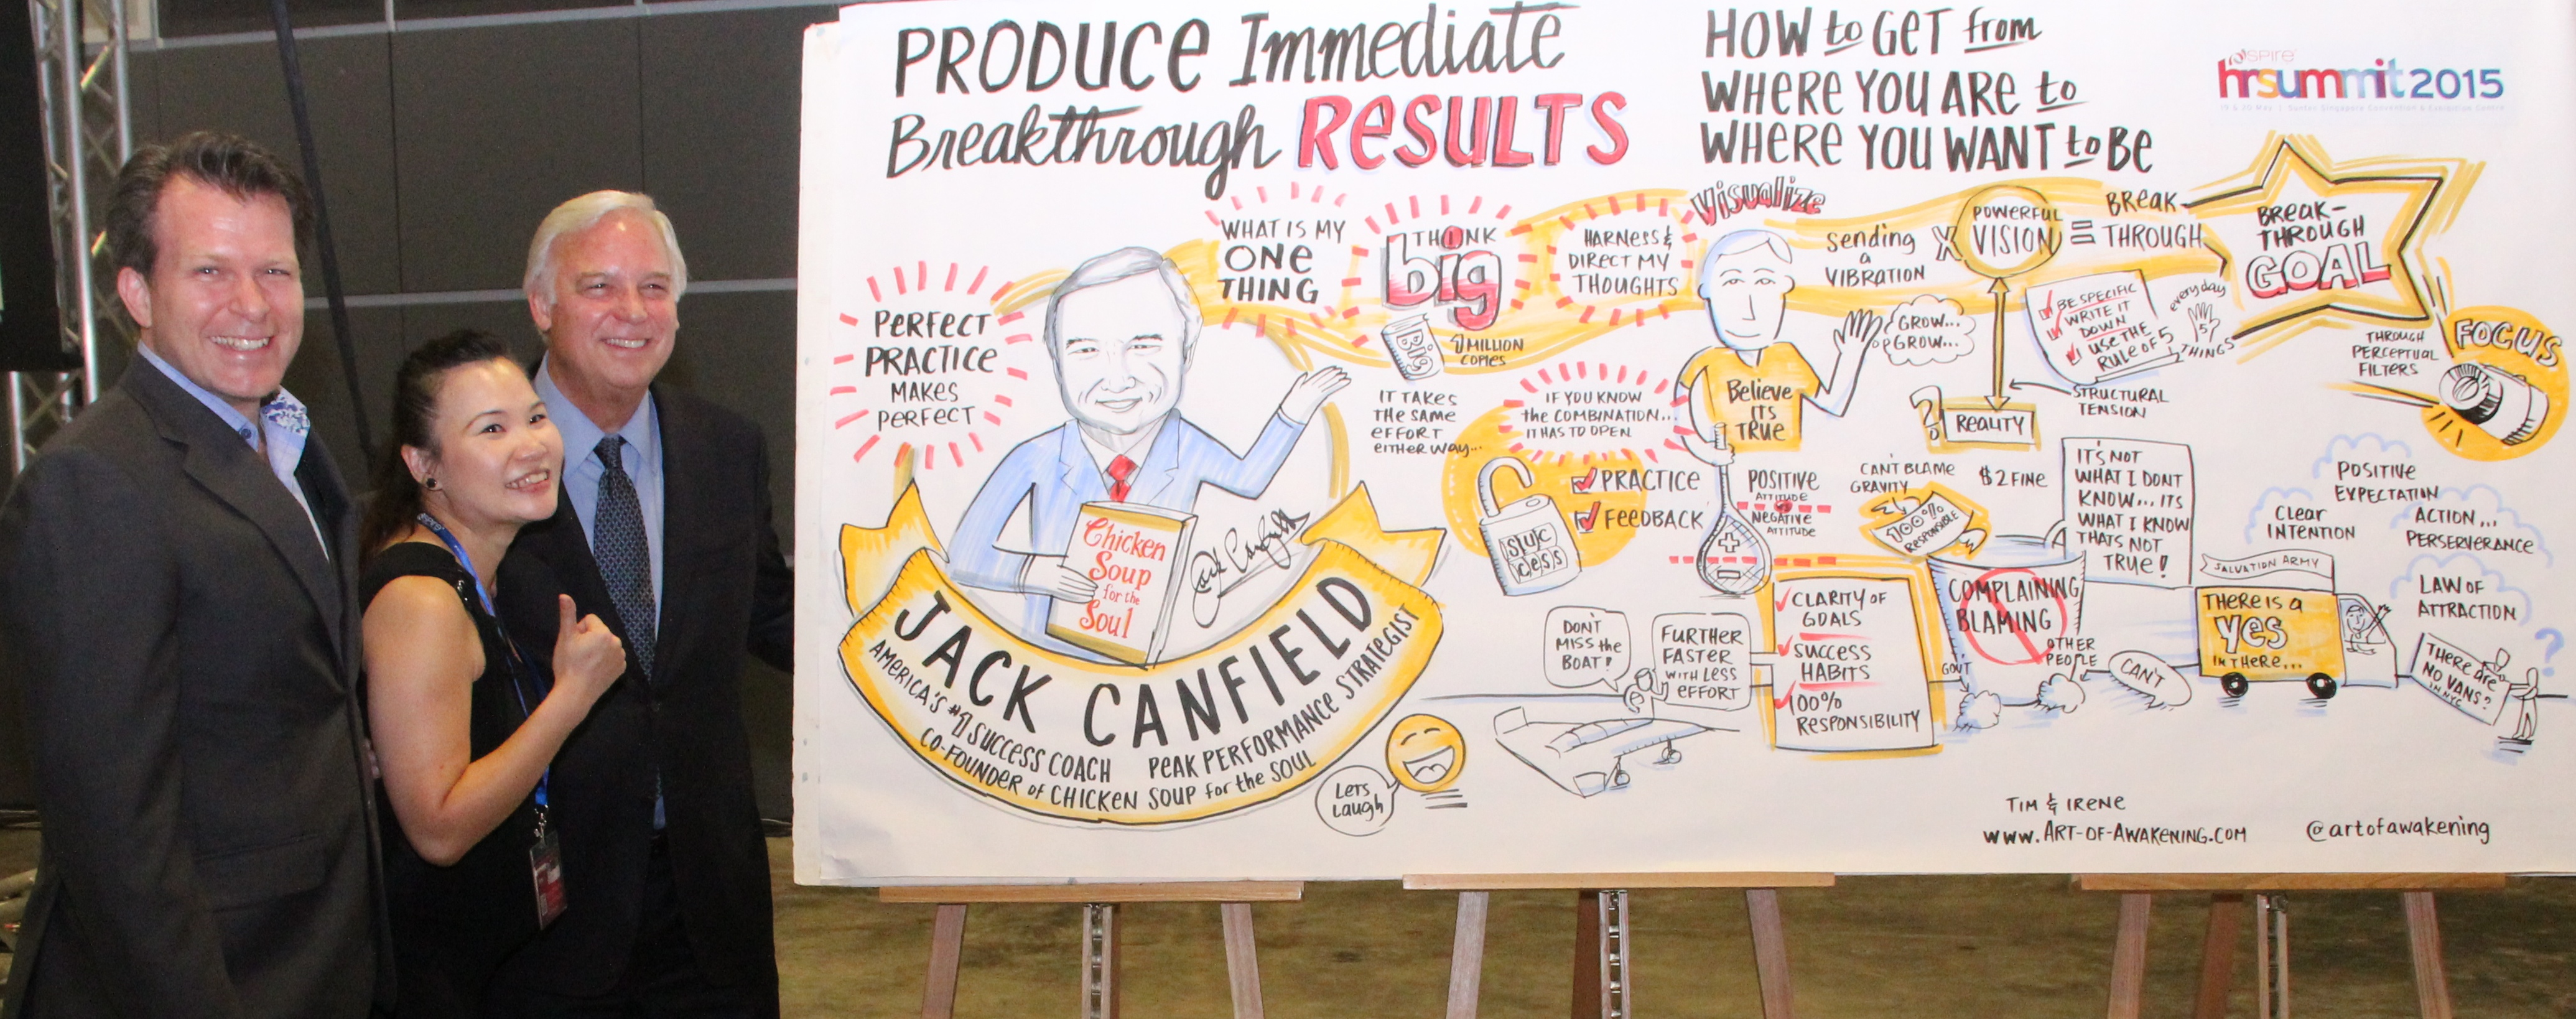 HR Summit 2015 - Jack Canfield